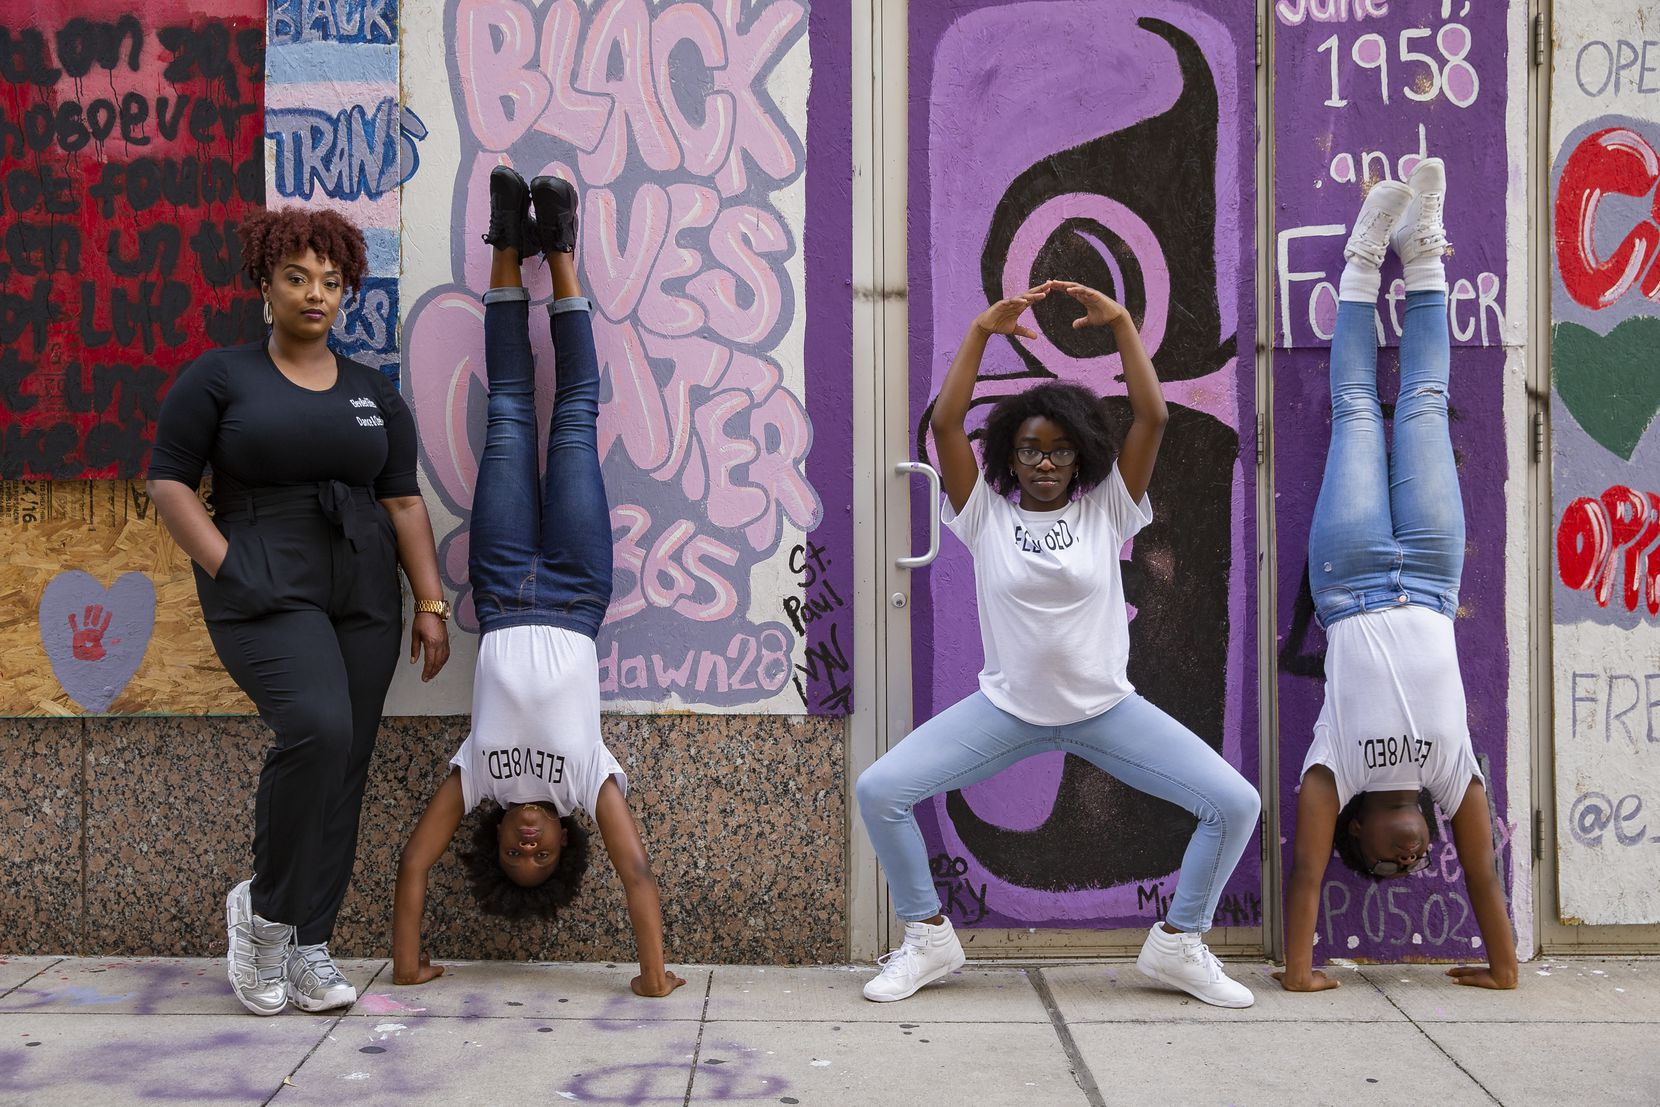 (From left) Dance director Shantrail White poses with members of Elev8ed Elites, co-captain Sha'kyra Roberts, 13, Zaria Fisher, 10, and Janyiah Cooks, 12, on June 27, 2020 in downtown Dallas. Elev8ed Elites is an all girls dance team that shot a video downtown in response to police brutality shortly after George Floyd died. (Juan Figueroa/ The Dallas Morning News)